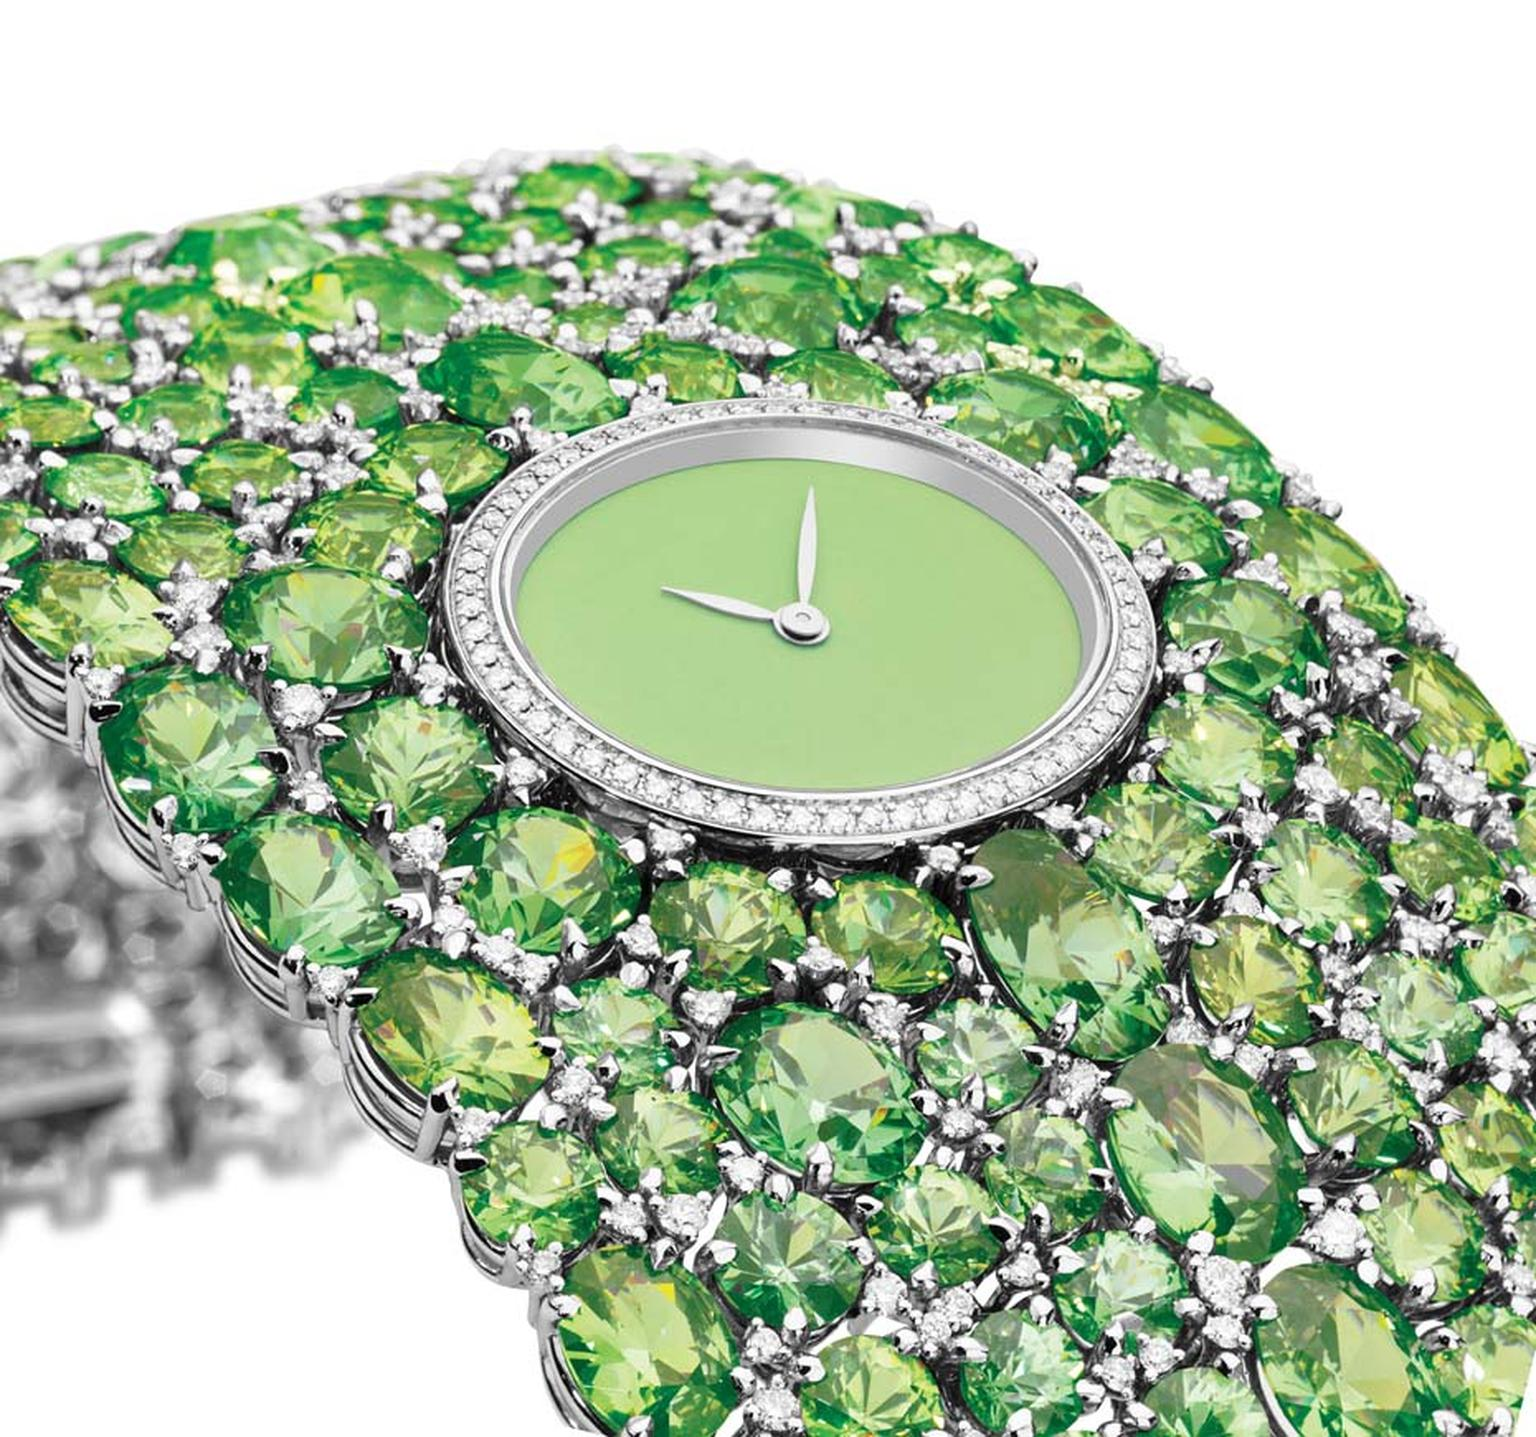 One-of-a-kind DeLaneau Grace Demantoids jewellery watch in white gold with a Grand Feu enamelled dial, set with 245 demantoid garnets and 415 diamonds on the cuff bracelet and a further 58 diamonds on the case